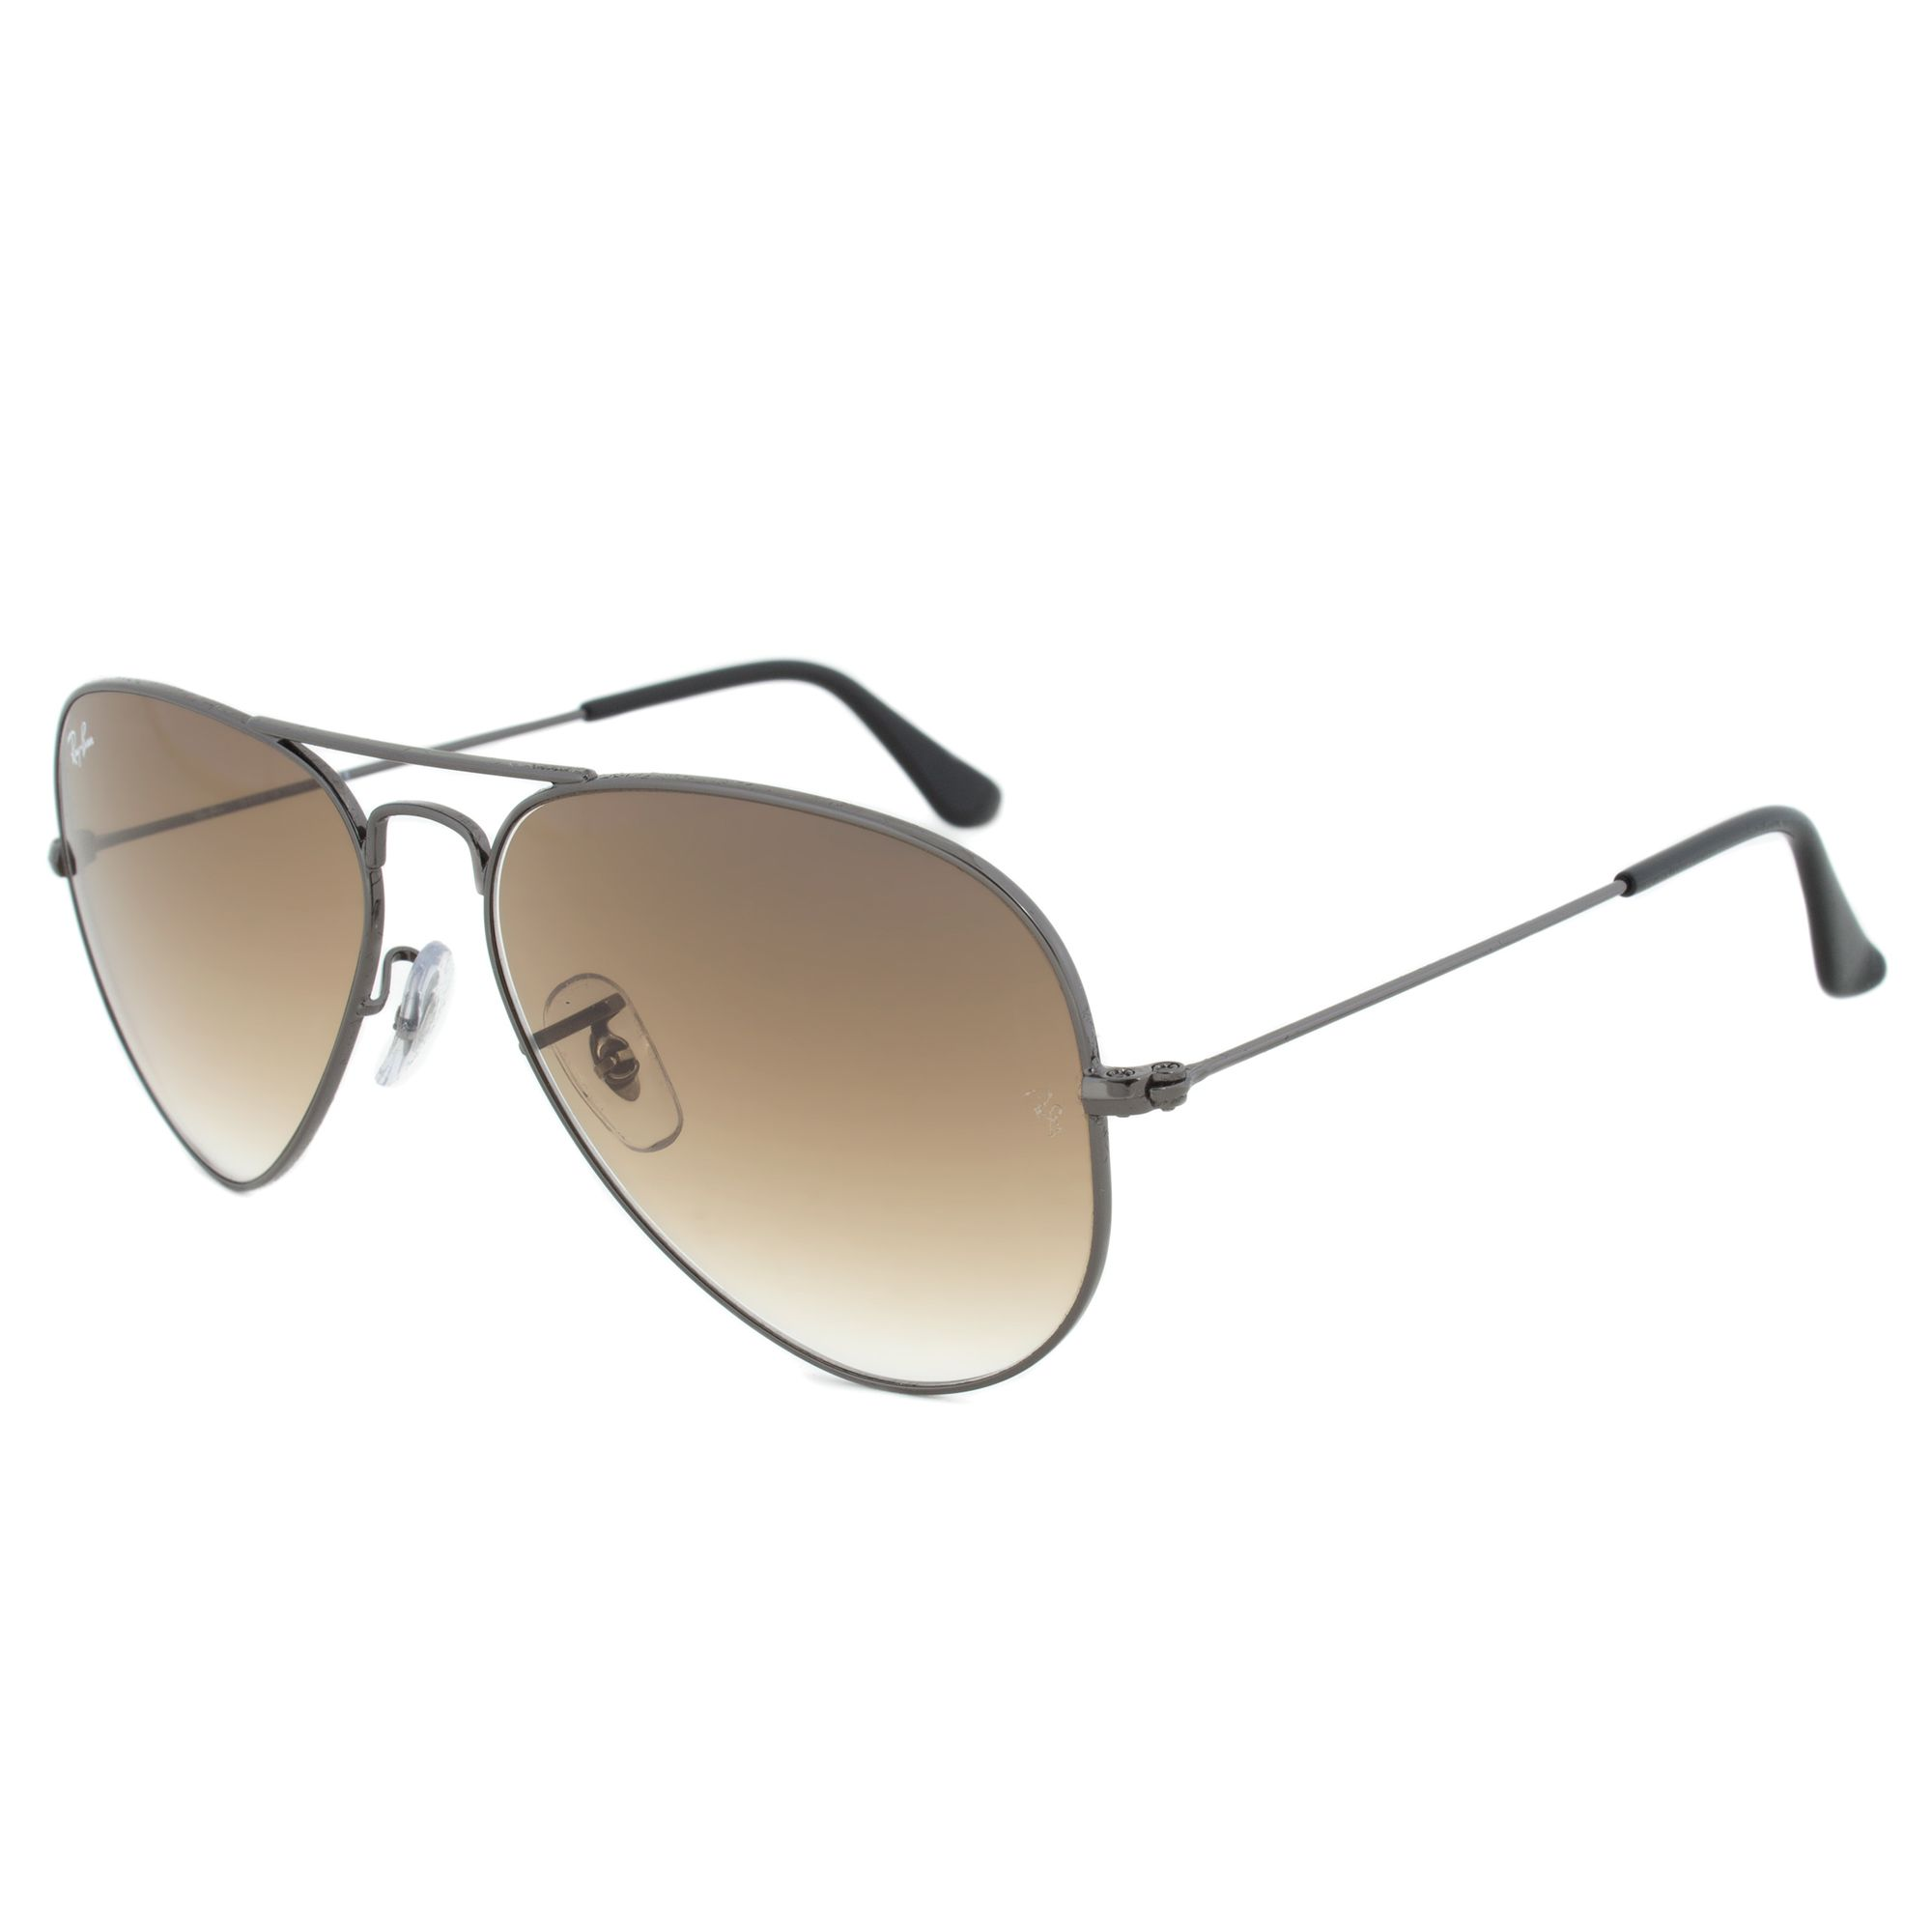 7ba9424242 Ray-Ban RB3025 004 51 Size 58 Brown Gradient Lens Gunmetal Frame Aviator  Sunglasses